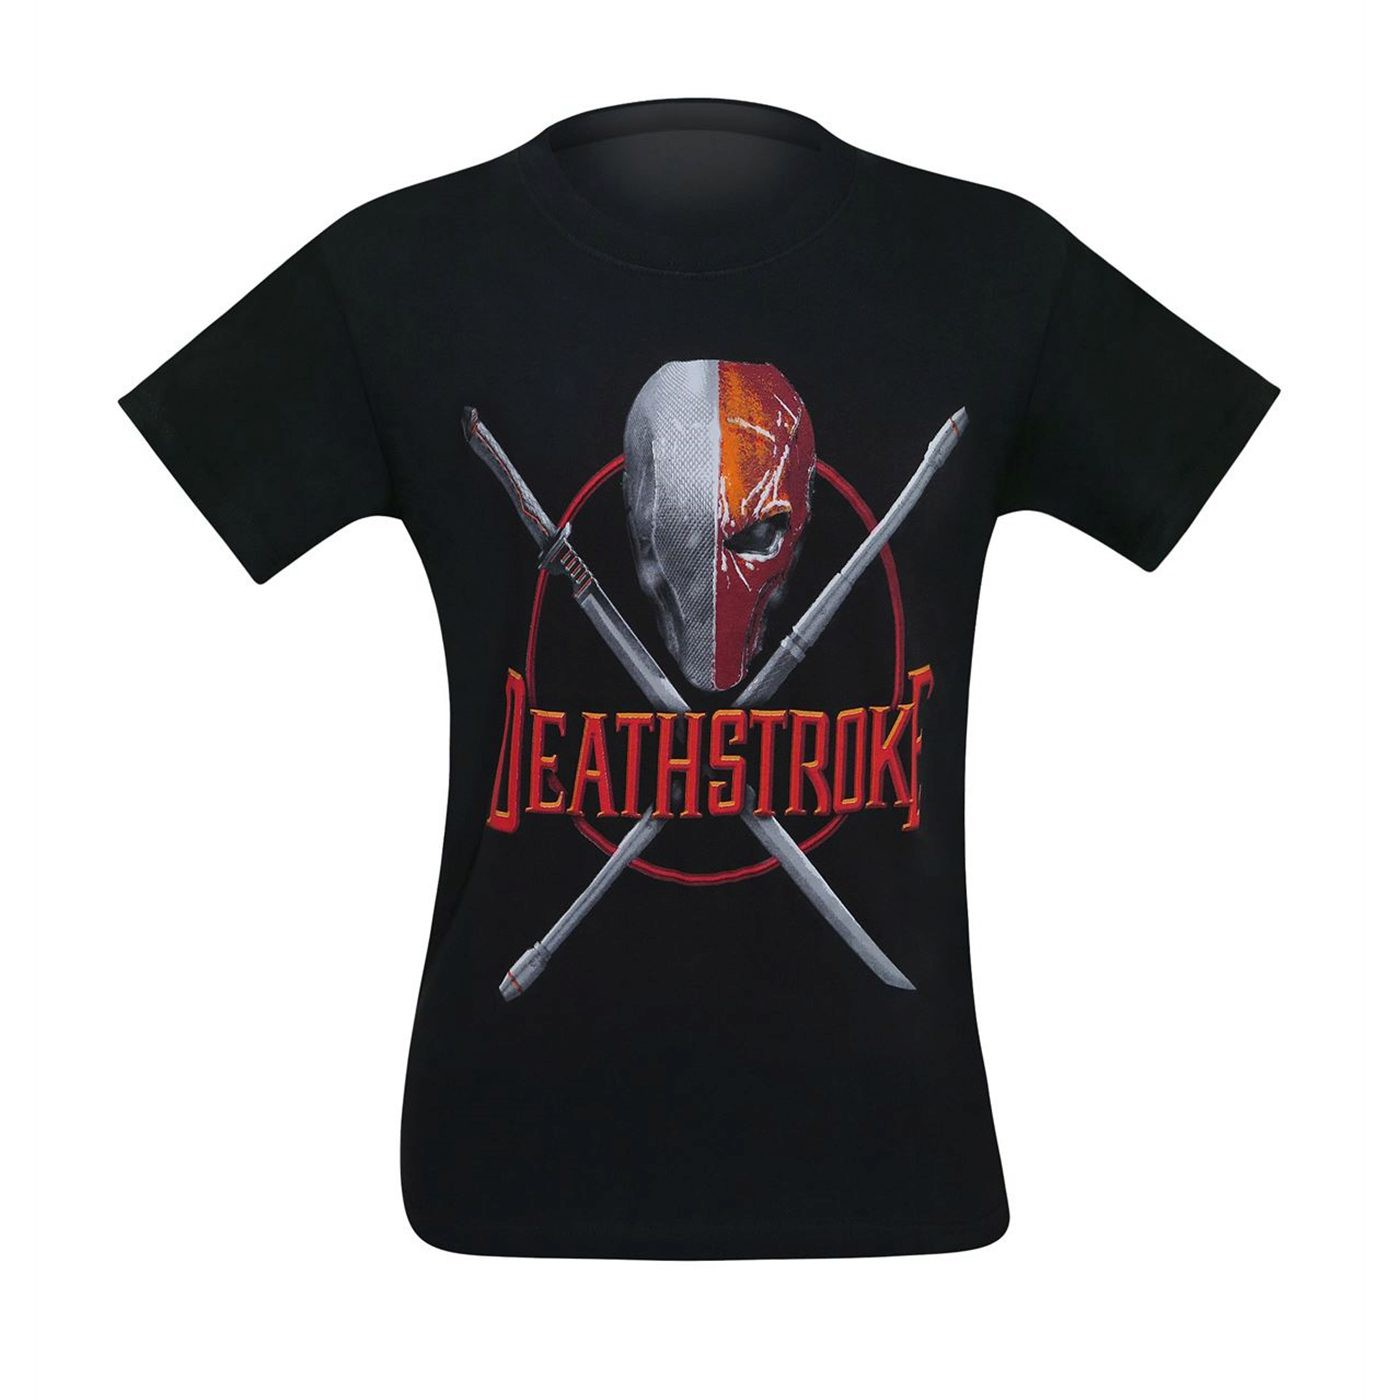 Deathstroke Weapons Crossed Men's T-Shirt